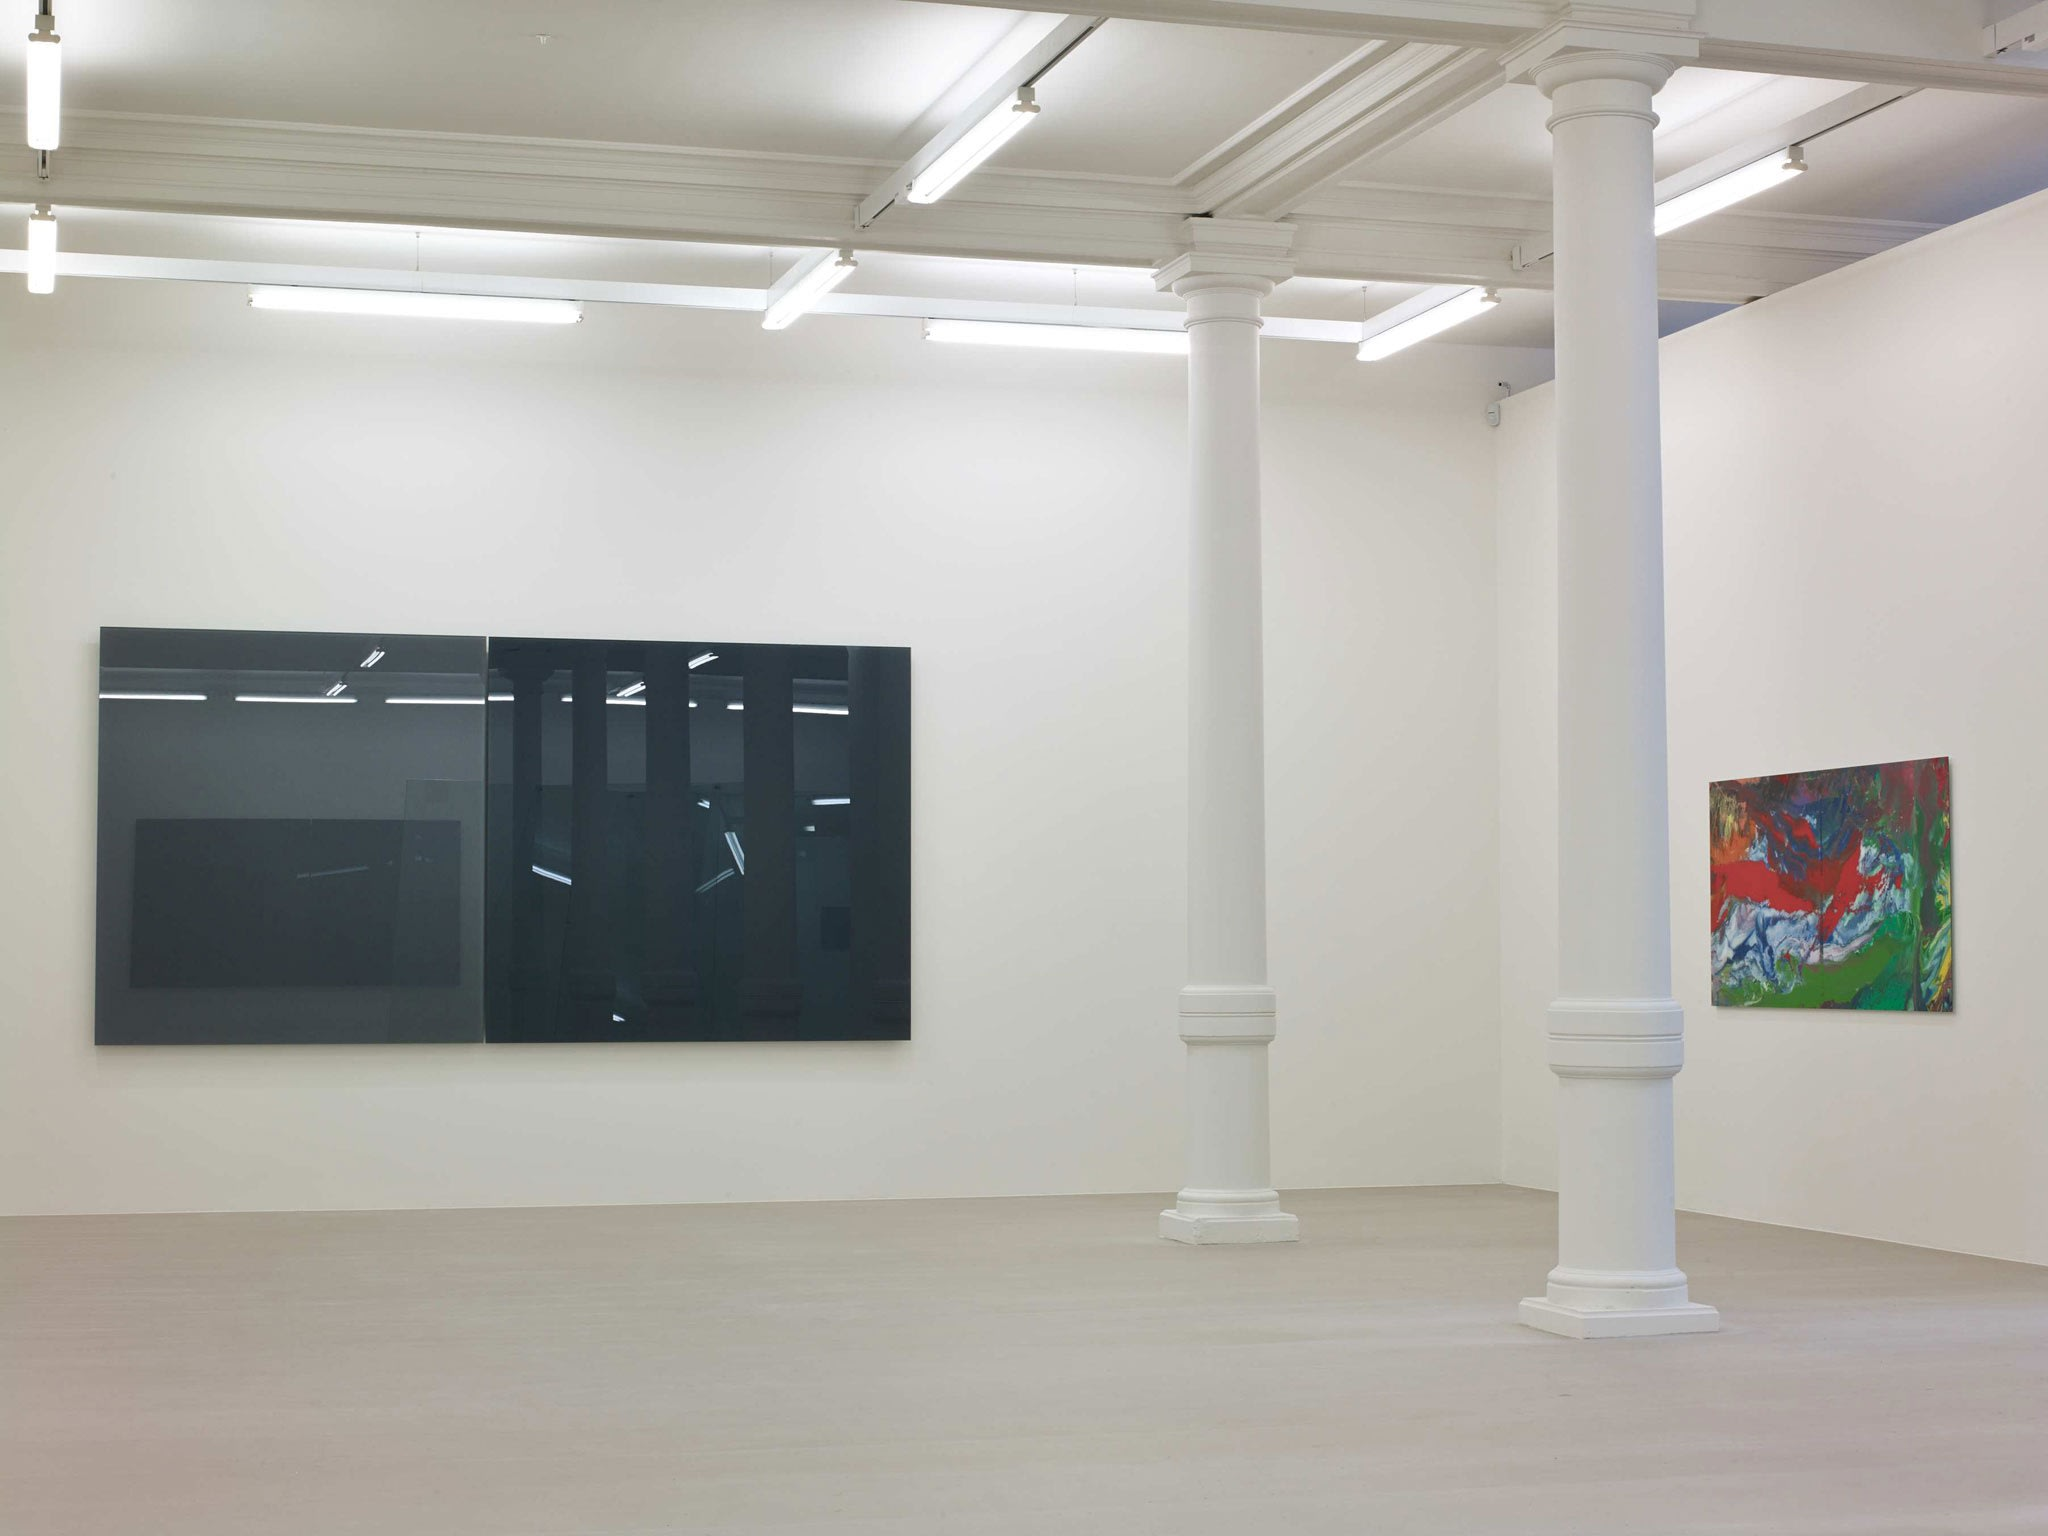 In a large white space with columns, two large square glass panes hang next to each other on a wall, one black and one grey. On the wall to their right is a small abstract painting, of reds, whites, and greens.